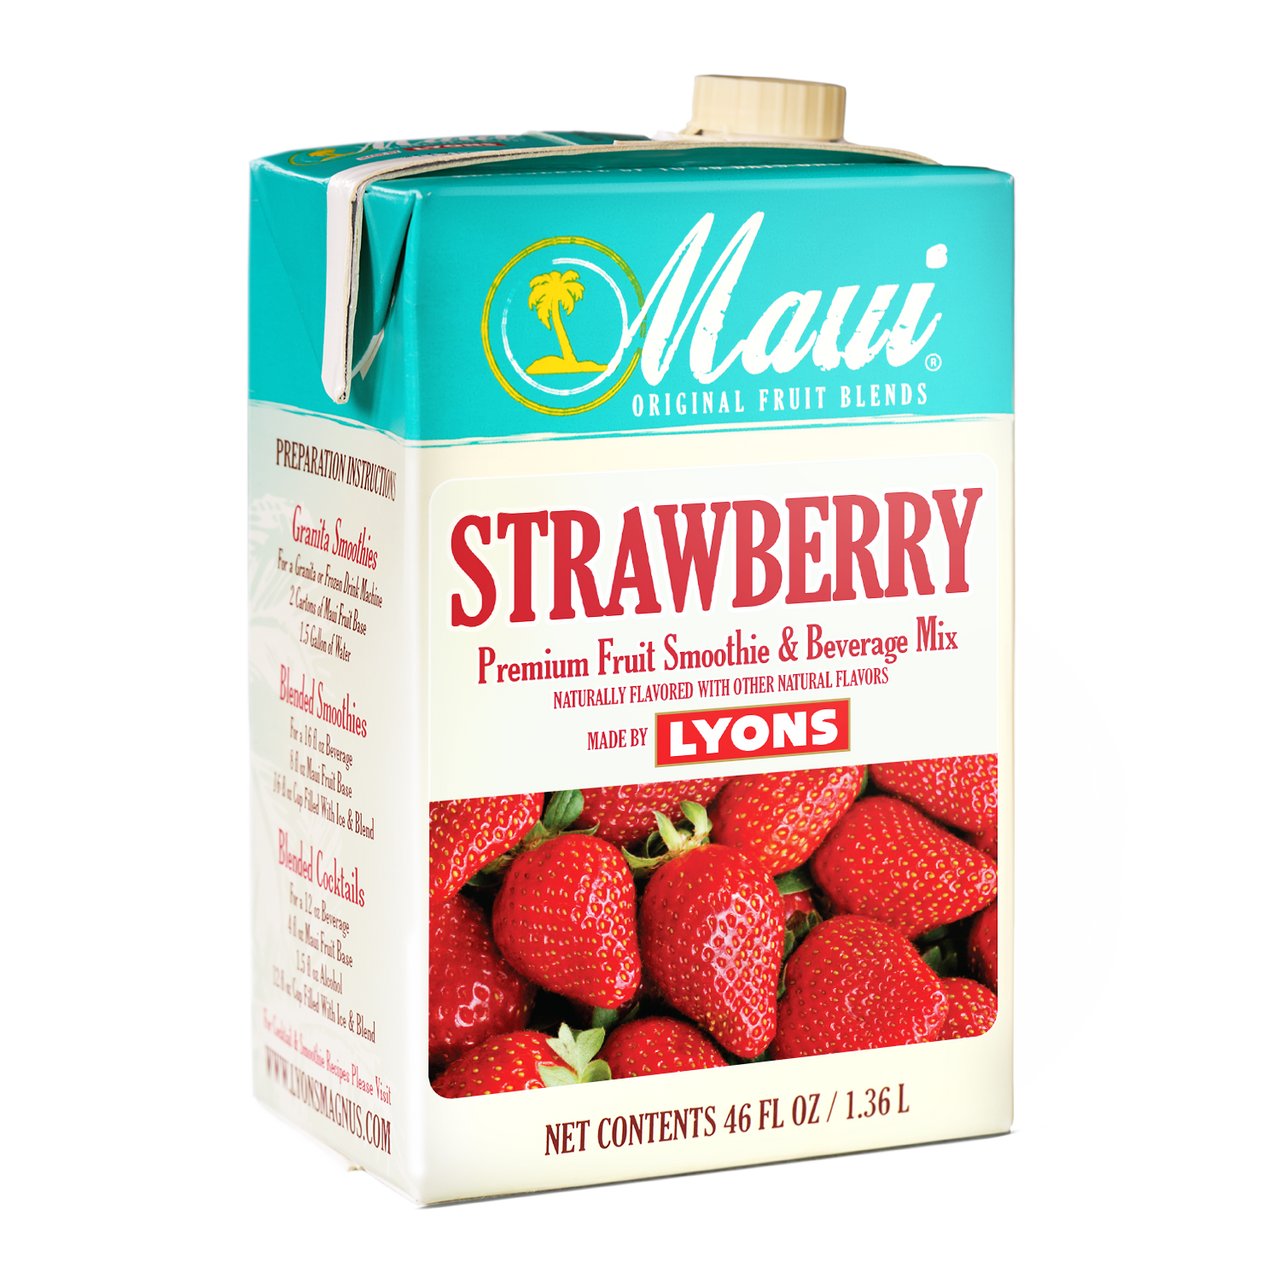 Strawberry Smoothie Mix